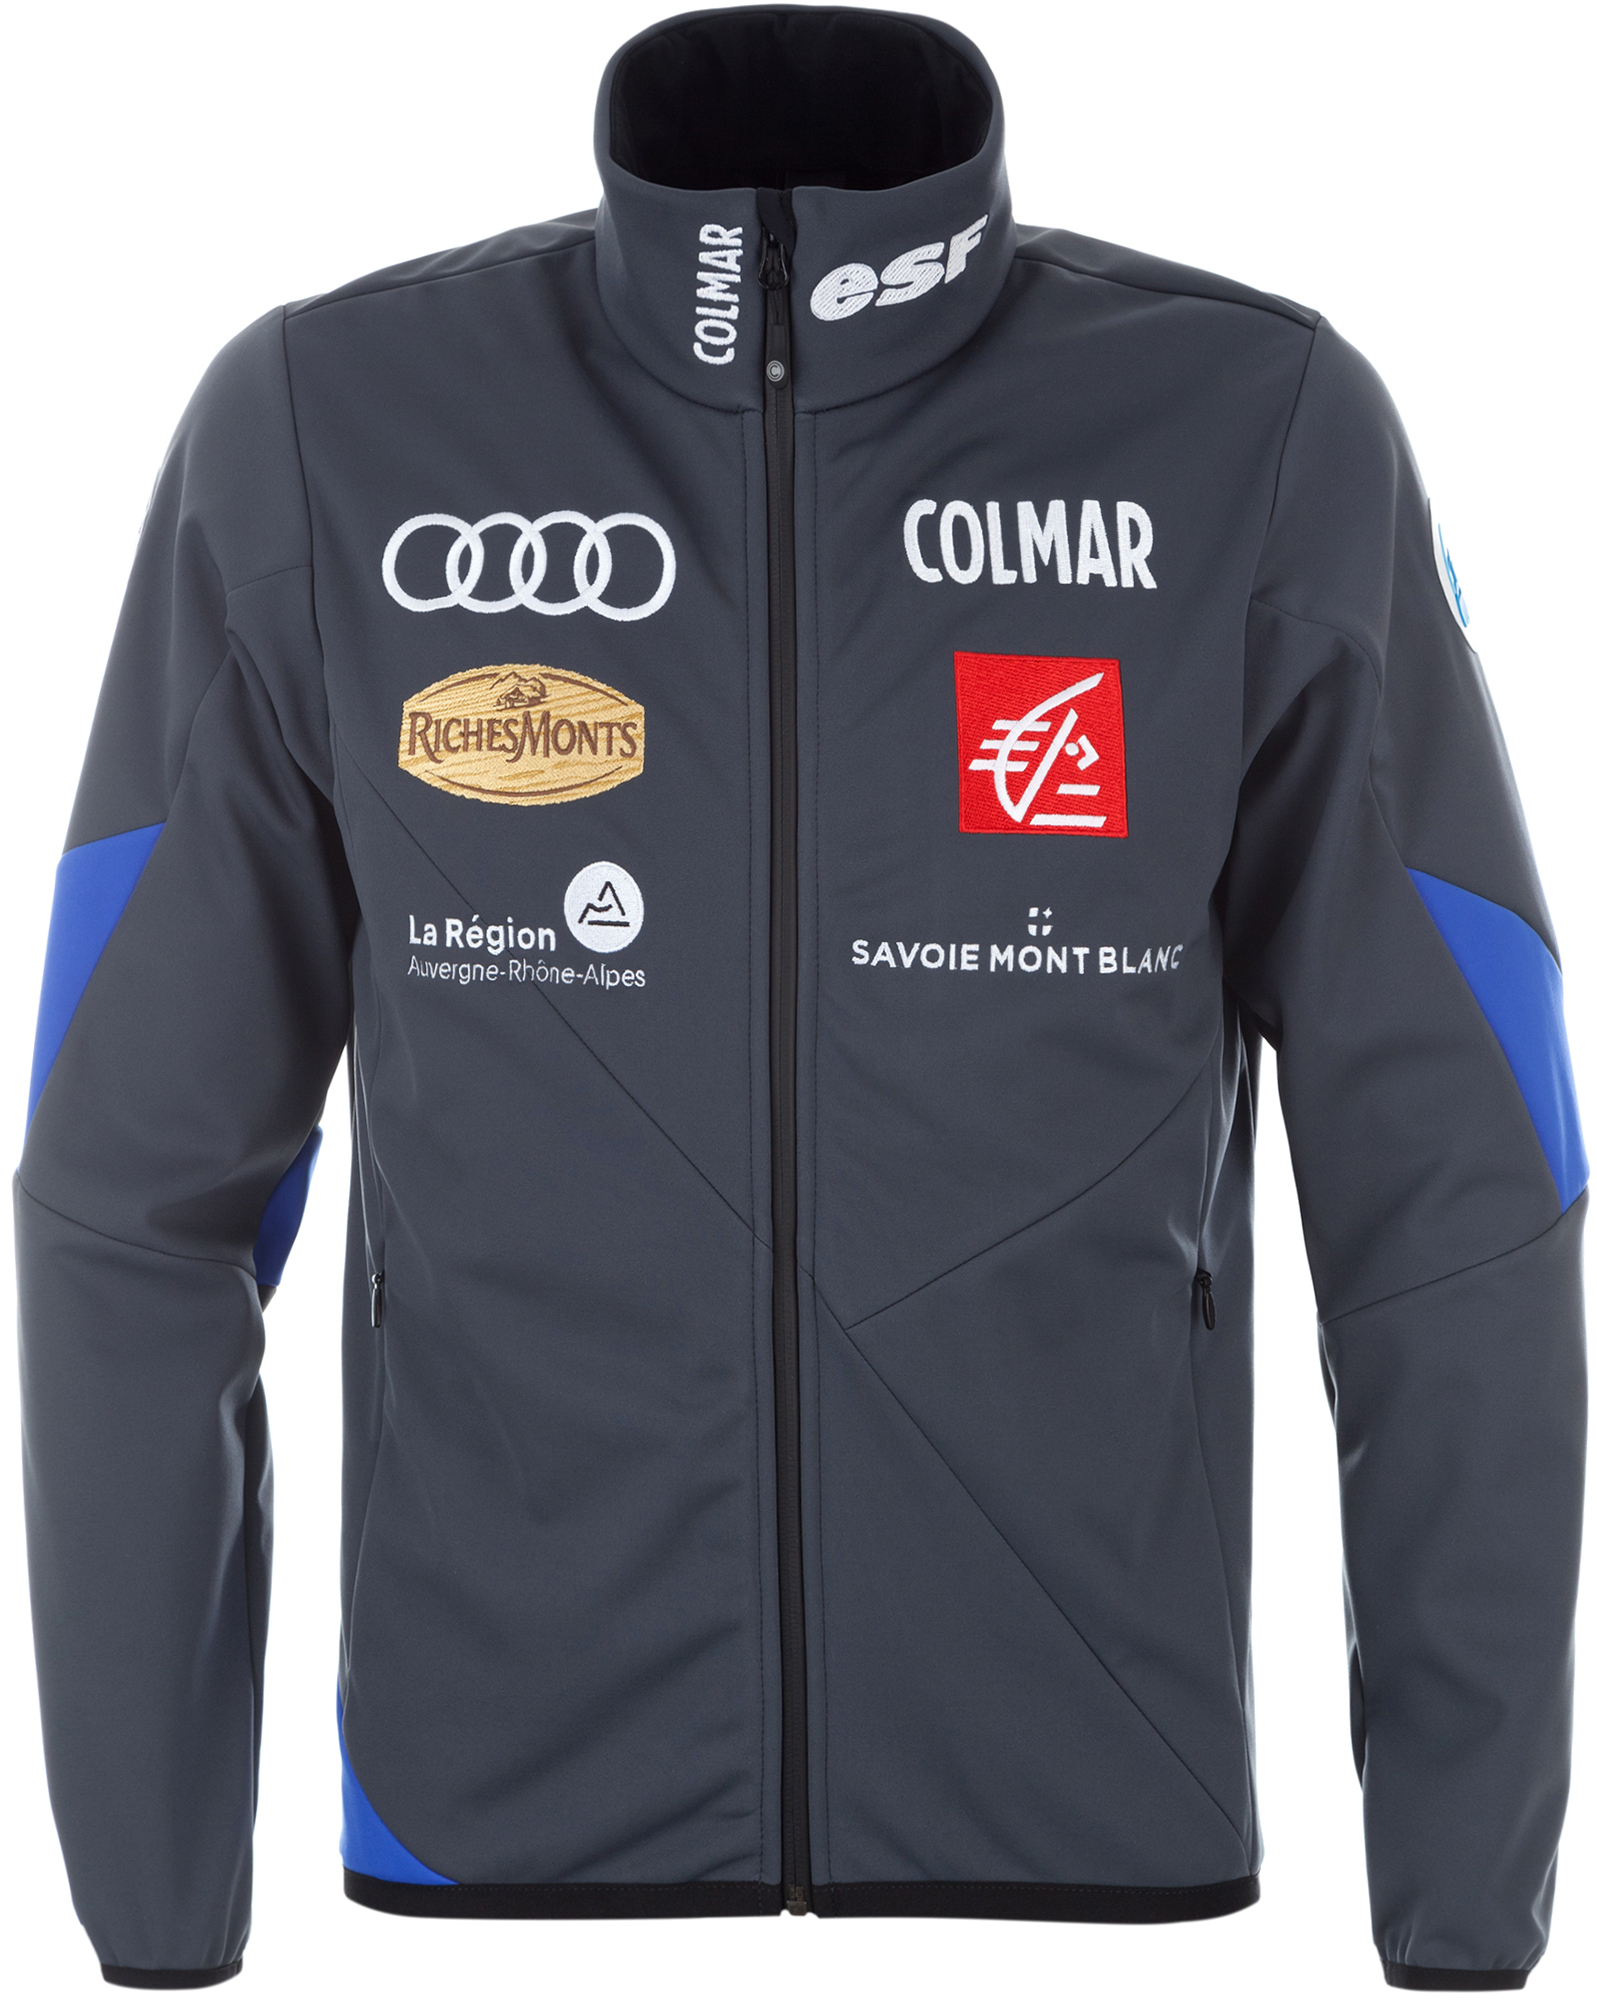 Colmar Куртка мужская Colmar Evolution Softshell куртка penfield мужская